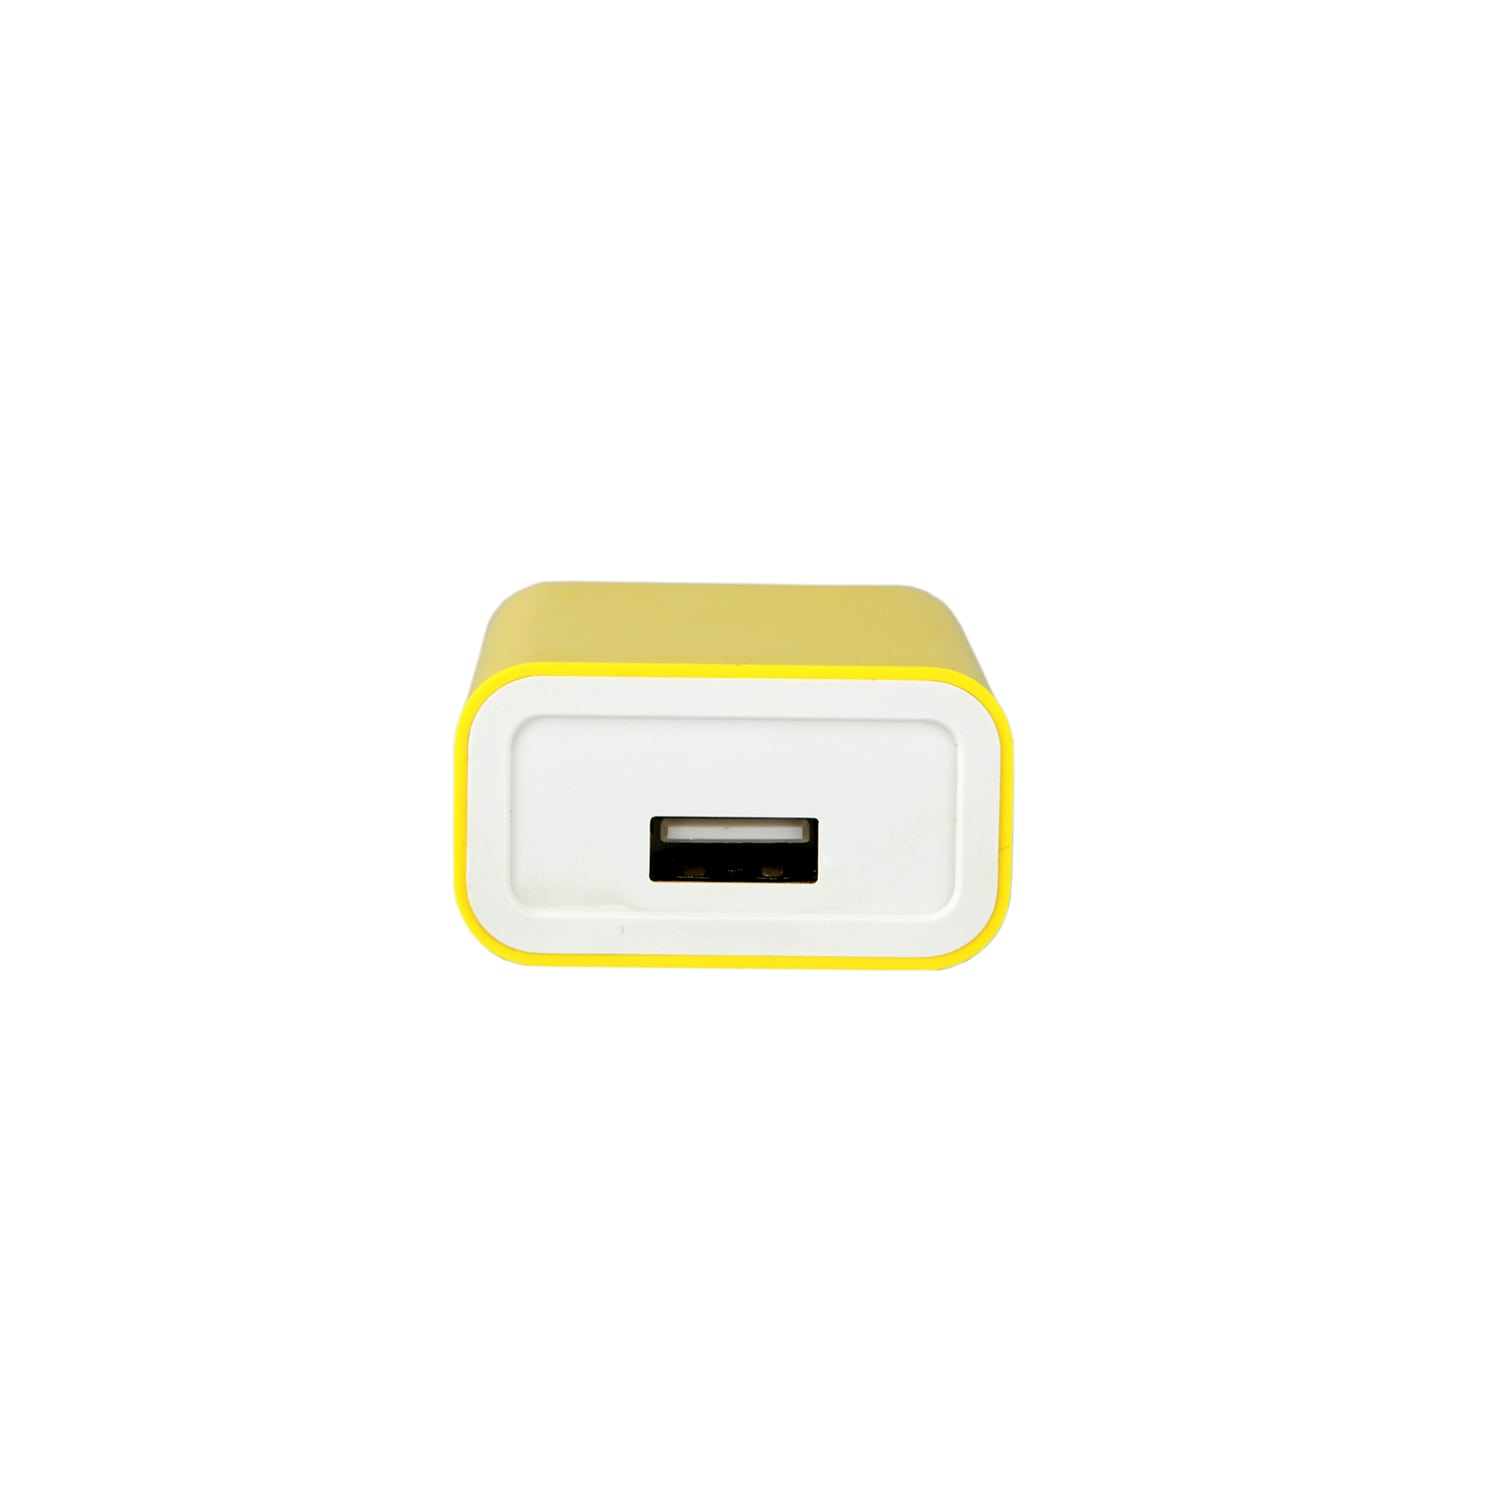 Esu320 2 0a Charger Standard Usb Port Usb Charger